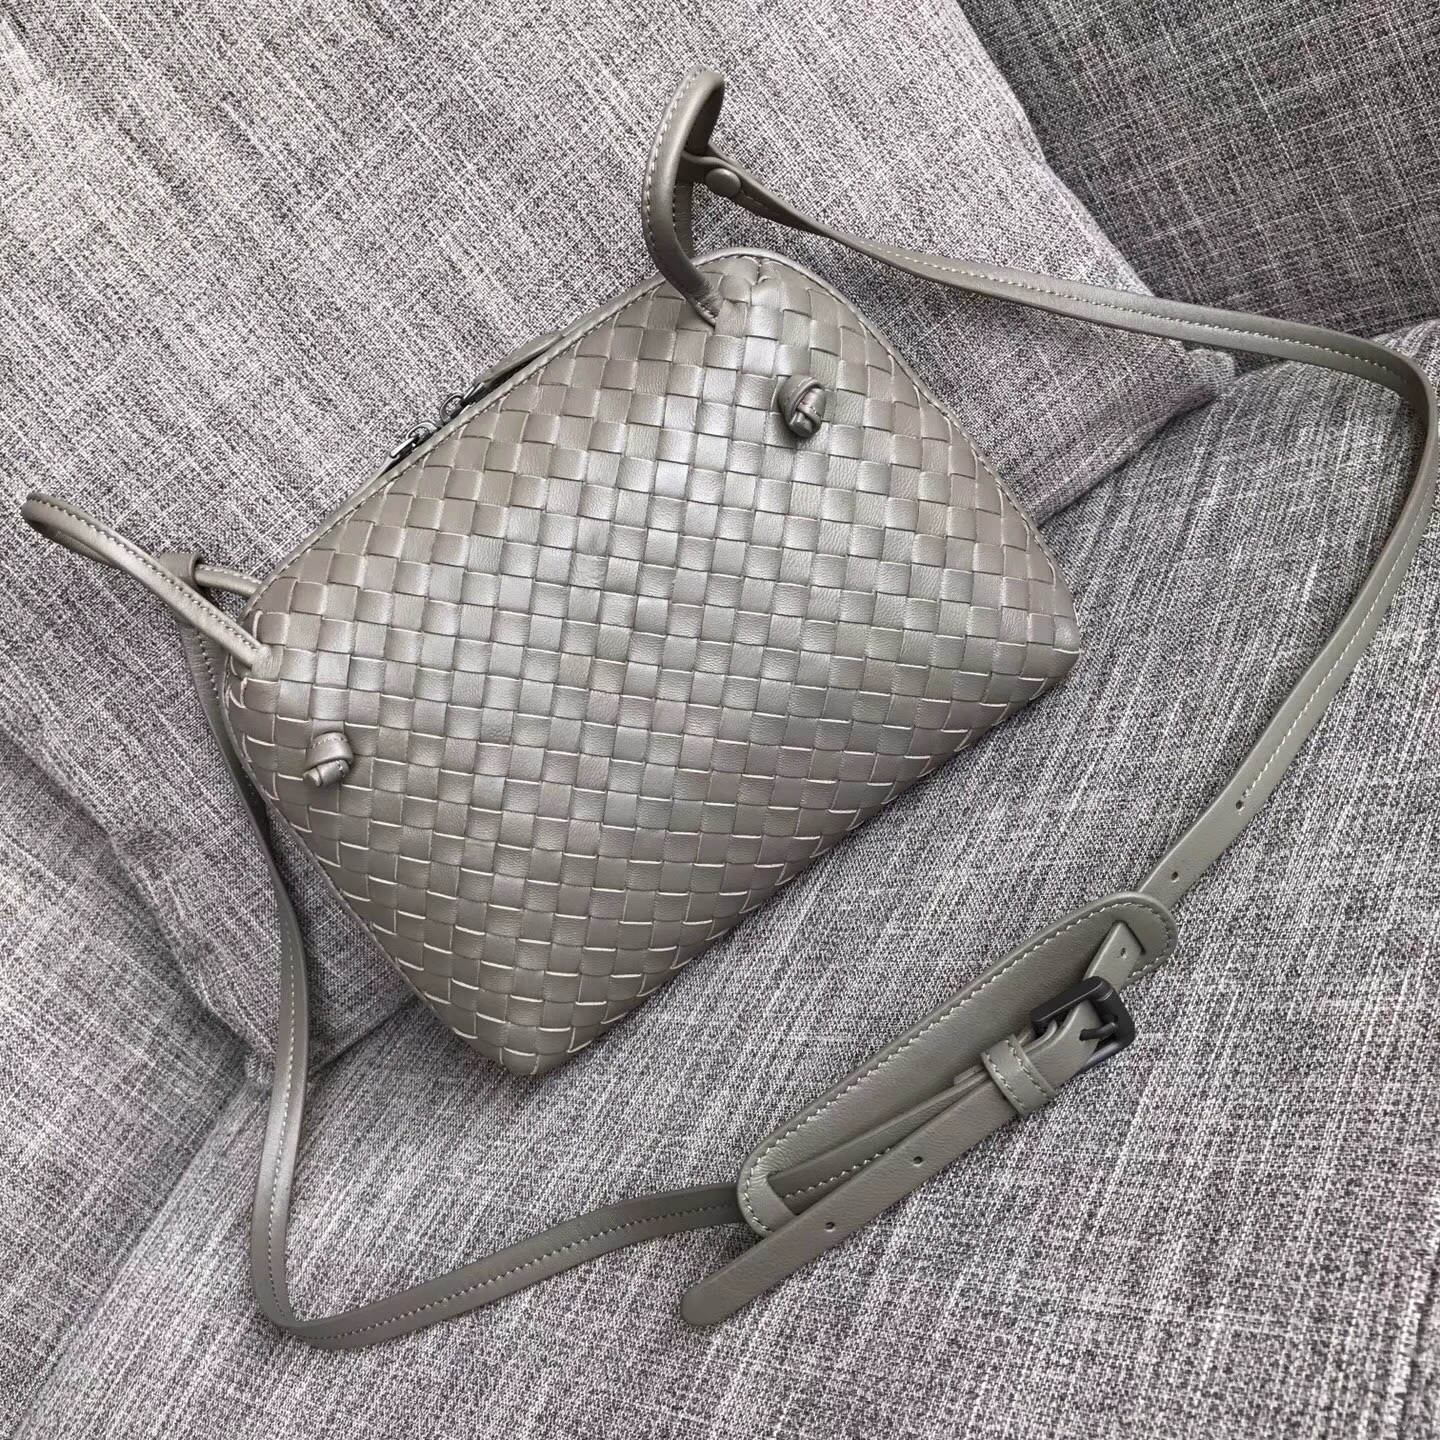 Bottega Veneta Bicolors Intrecciato Nappa Cross Body Bag BV9610 grey